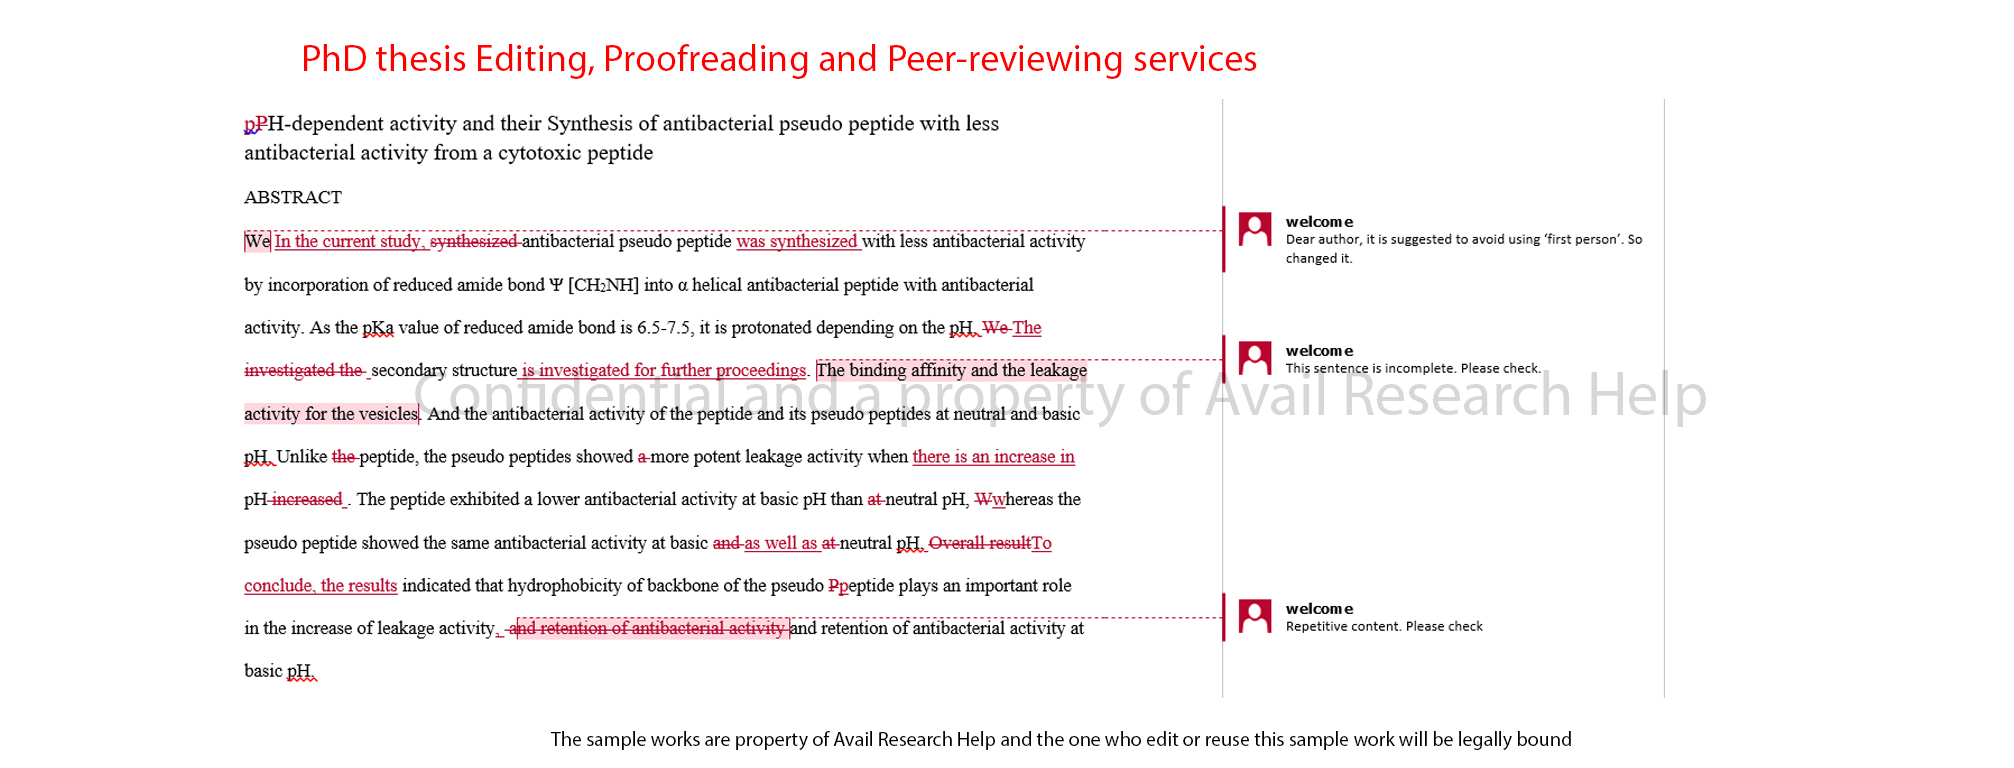 proofreading for phd thesis in uk Choose the best phd dissertation editing service with scribbr prevent careless mistakes and improve your academic writing with our proofreading services our experienced editors help you with your structure and clarity questions so you can focus on the content.